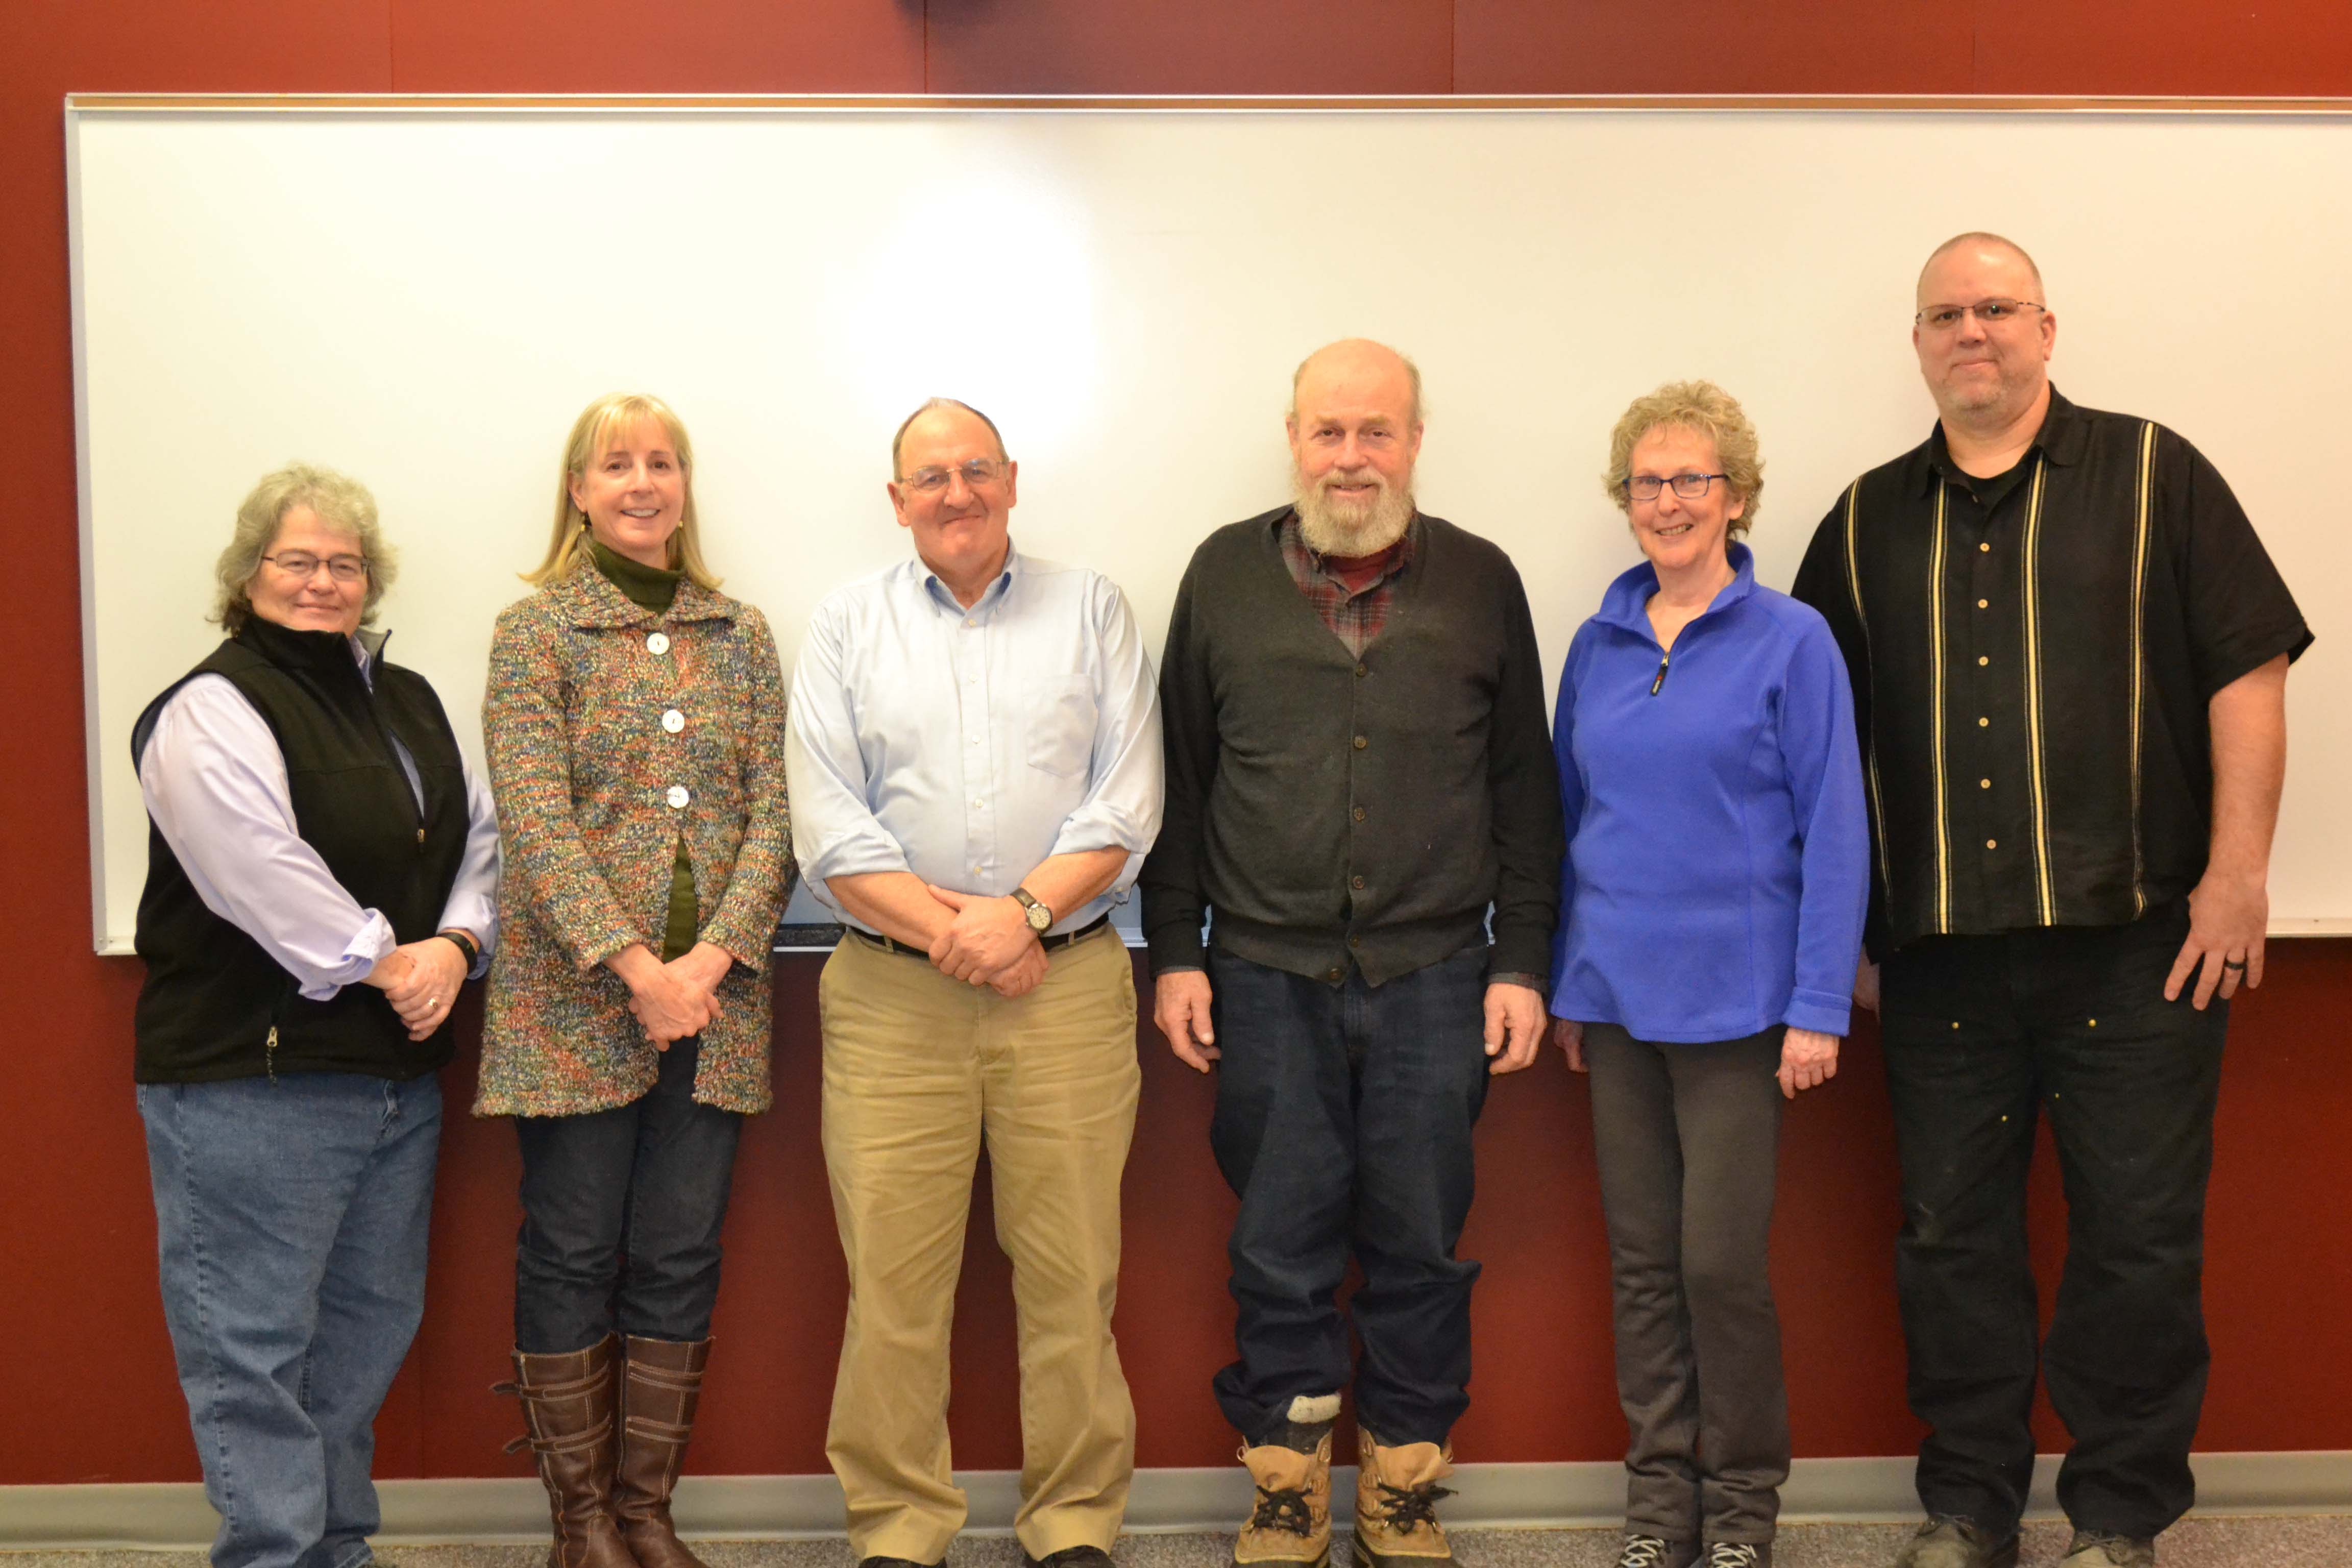 6 of the current Kodiak college advisory board members as of February 2020